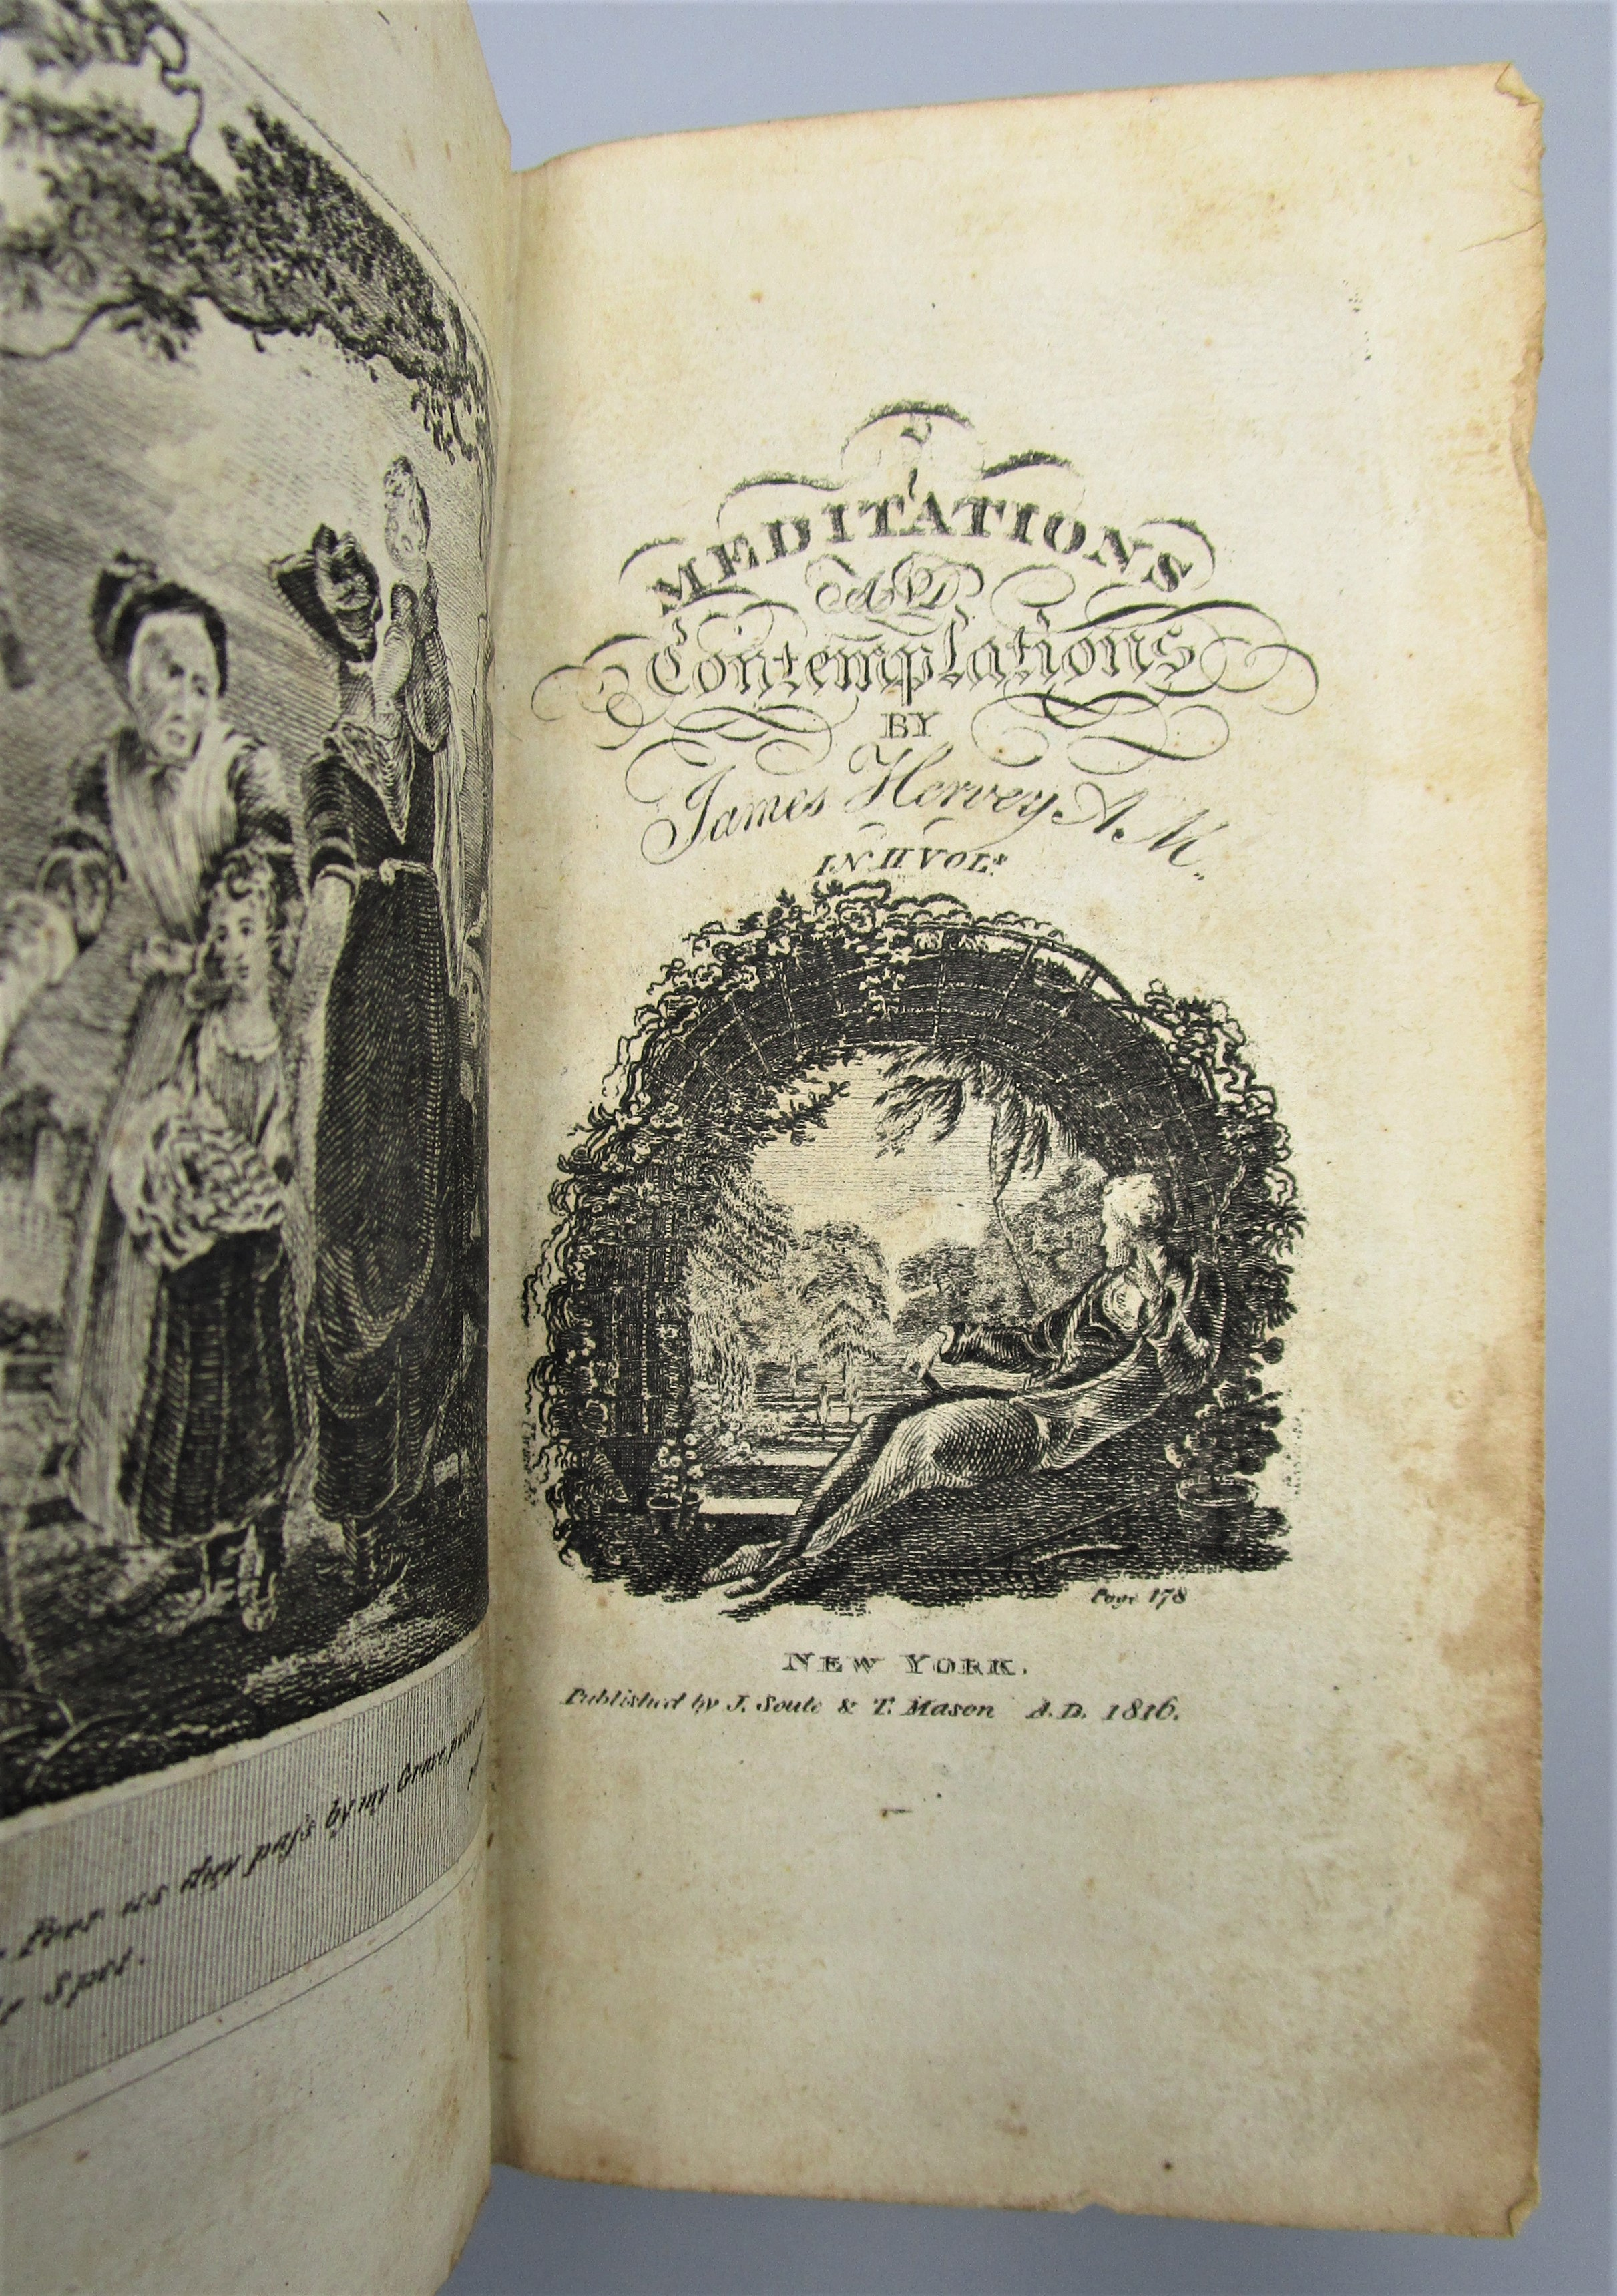 MEDITATIONS AND CONTEMPLATIONS, by James Hervey, A.M. - 1816 [2 Vol]